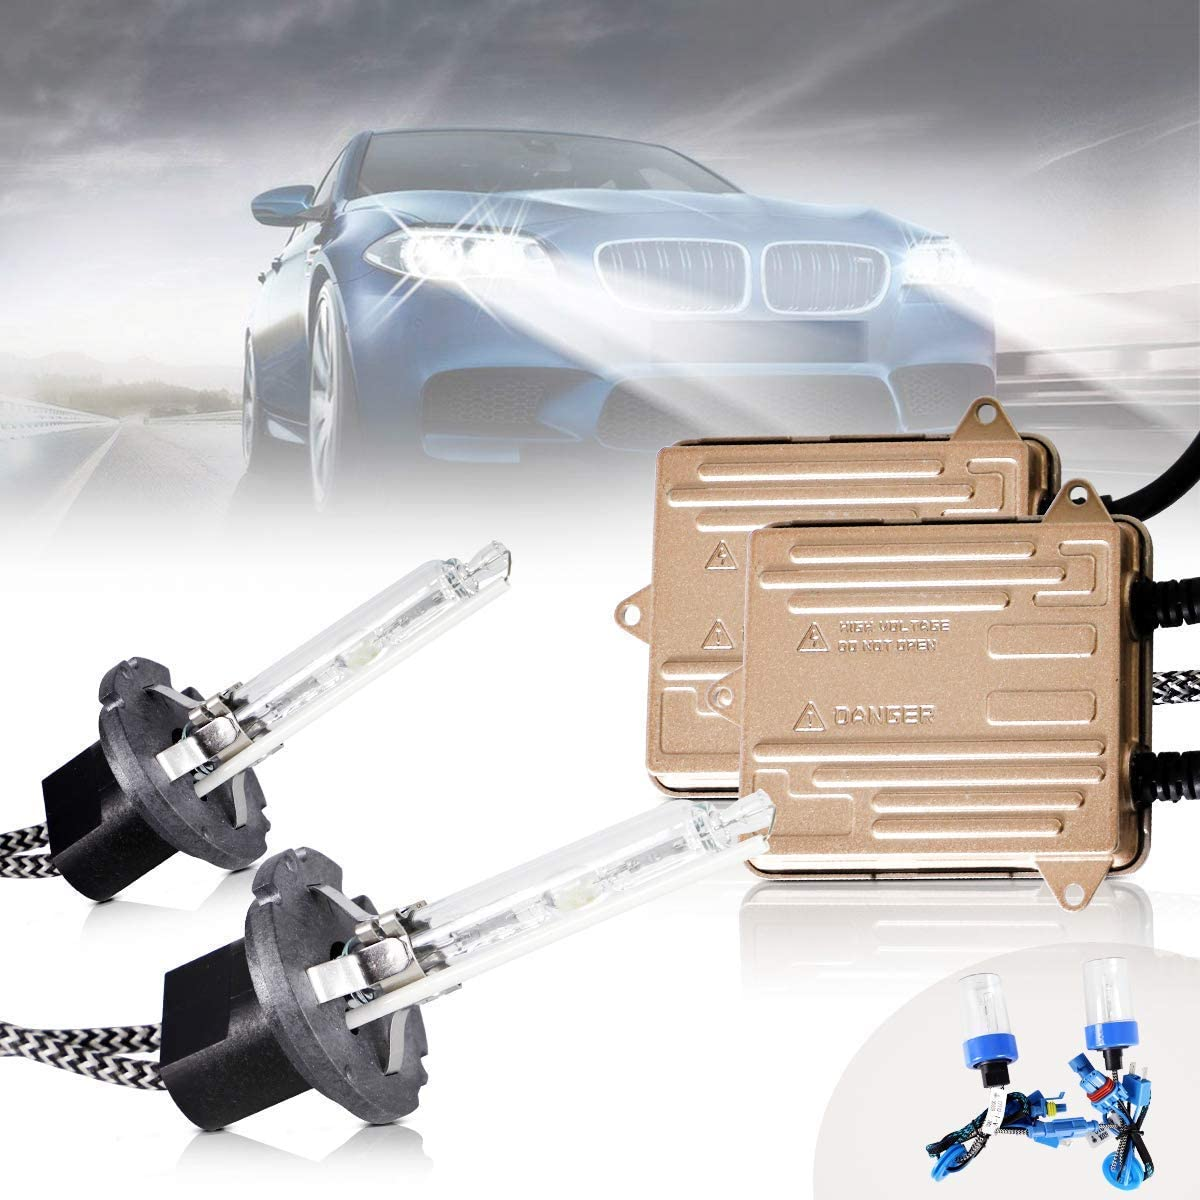 2 Set 12V 35W 6000K 3200Lm VLAND D2H Xenon Bulb Conversion Kit with Ballasts for Projector Headlights Compatible with D2S D2R D4S